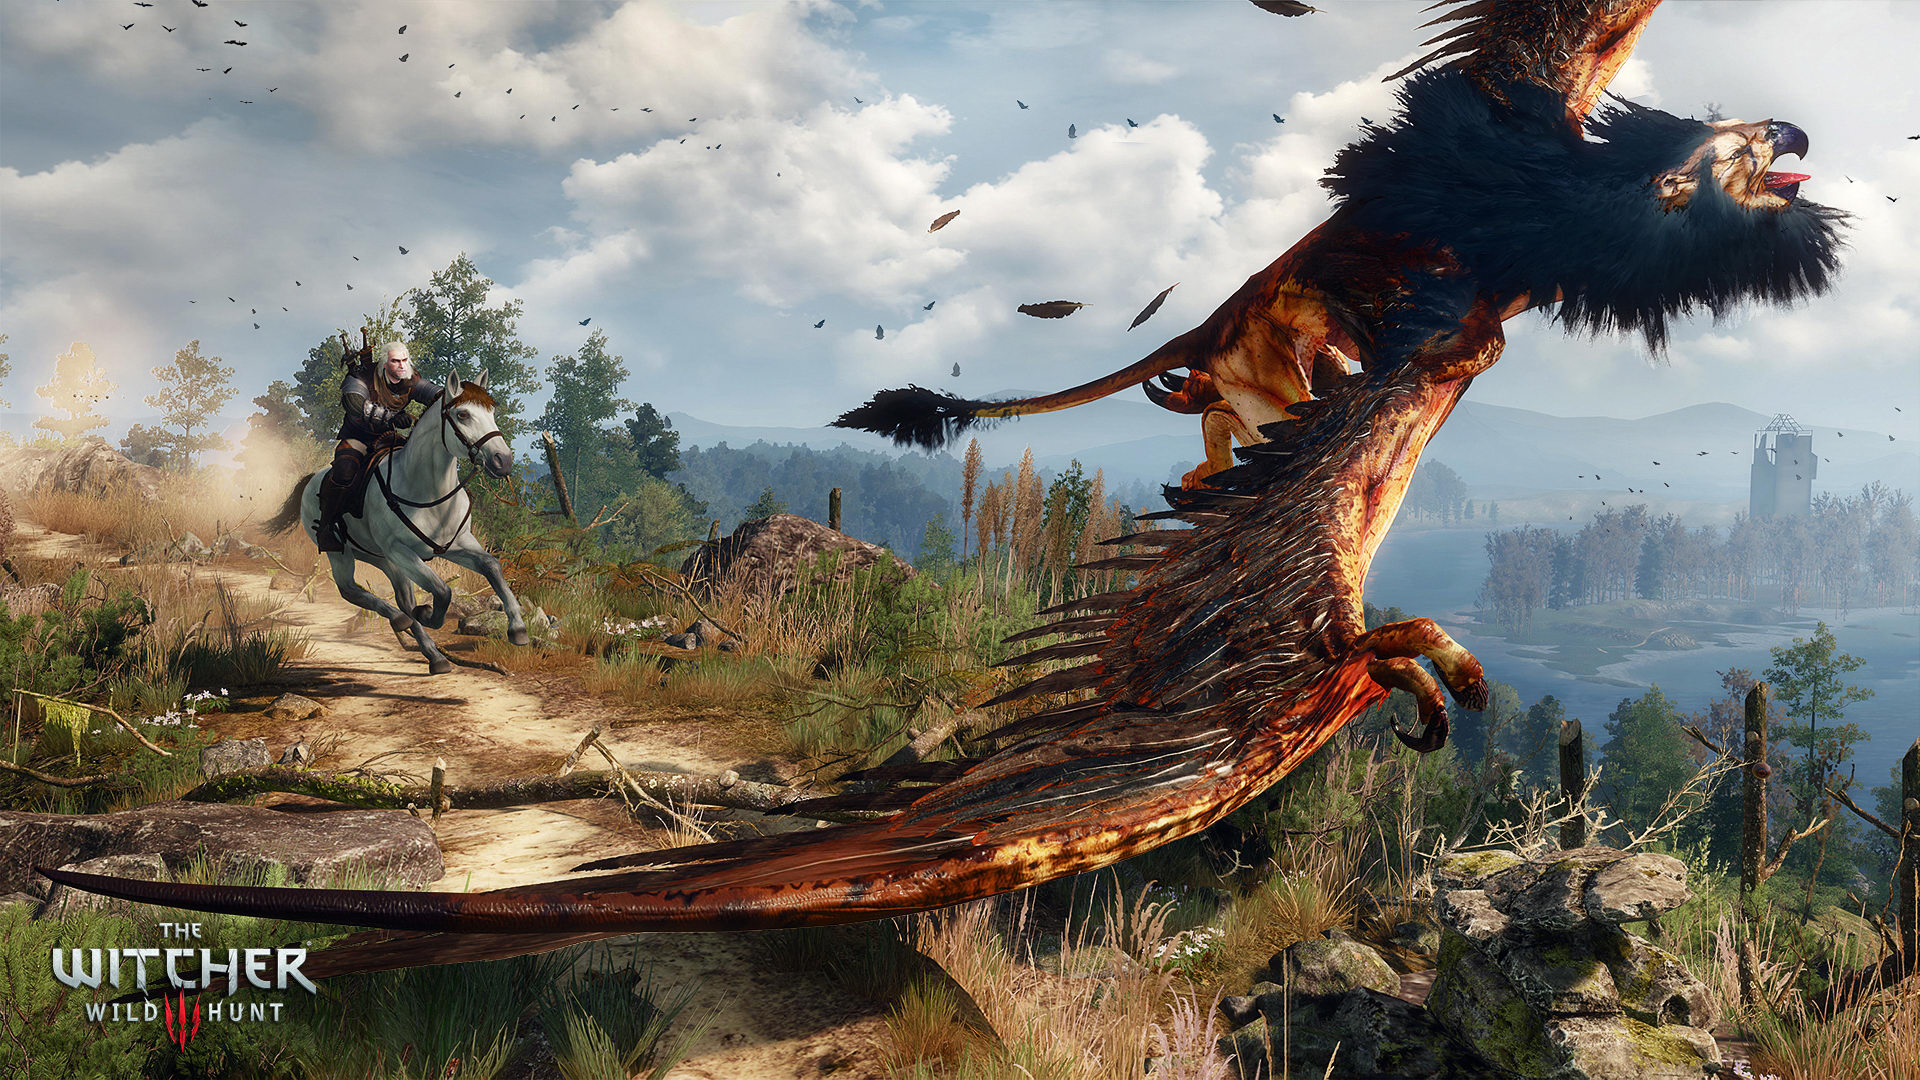 The Witcher 3 grifone che vola sul panorama